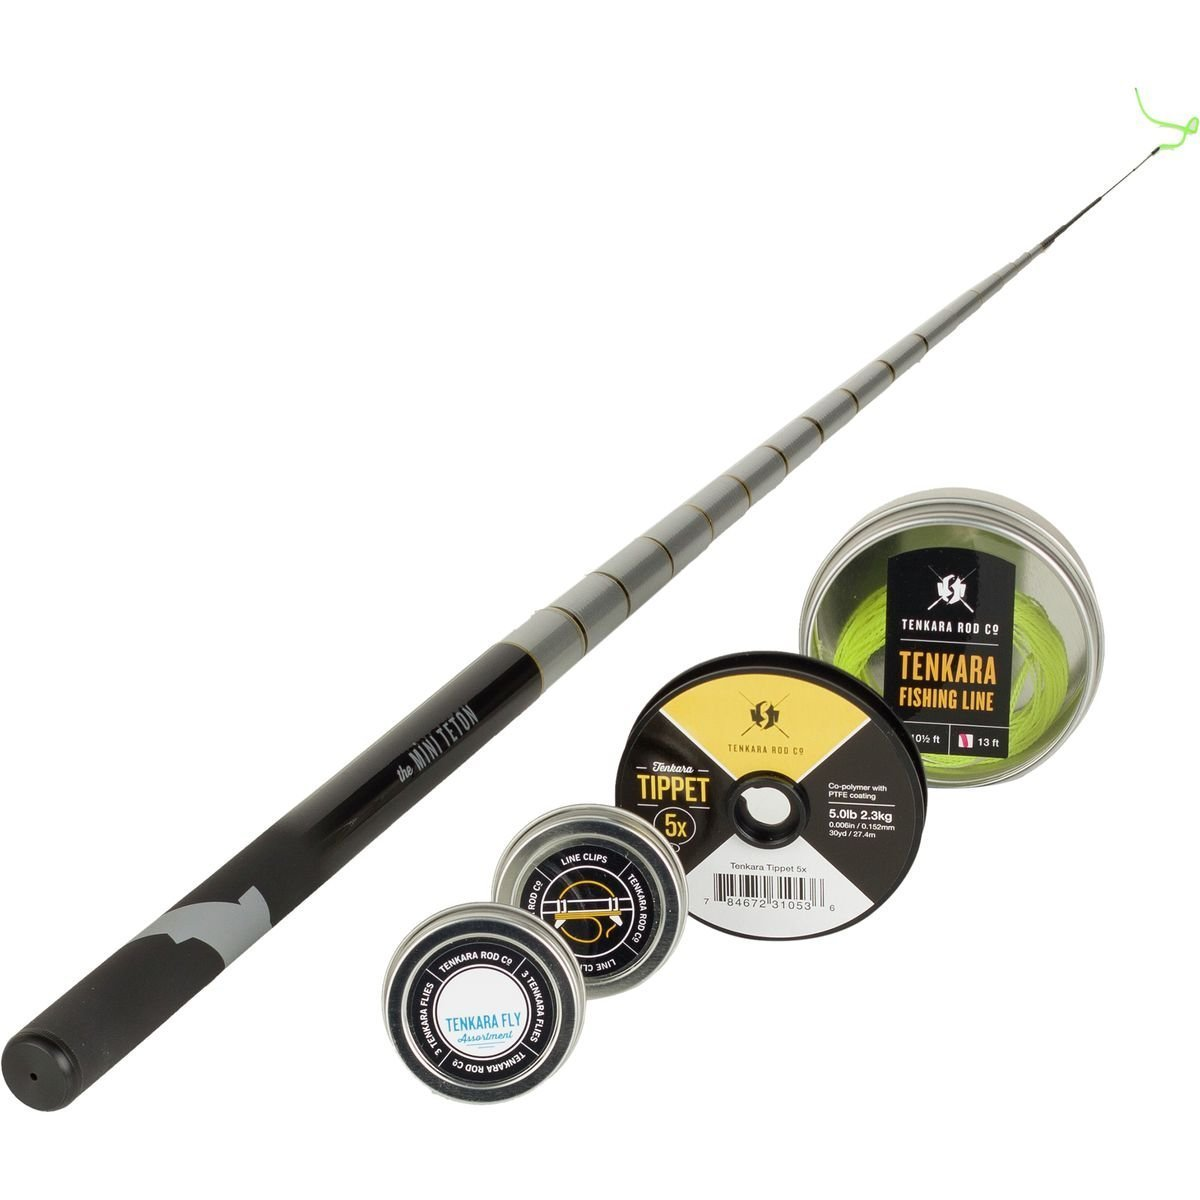 Tenkara Rod Co. The Mini Teton Package by Tenkara Rod Co.